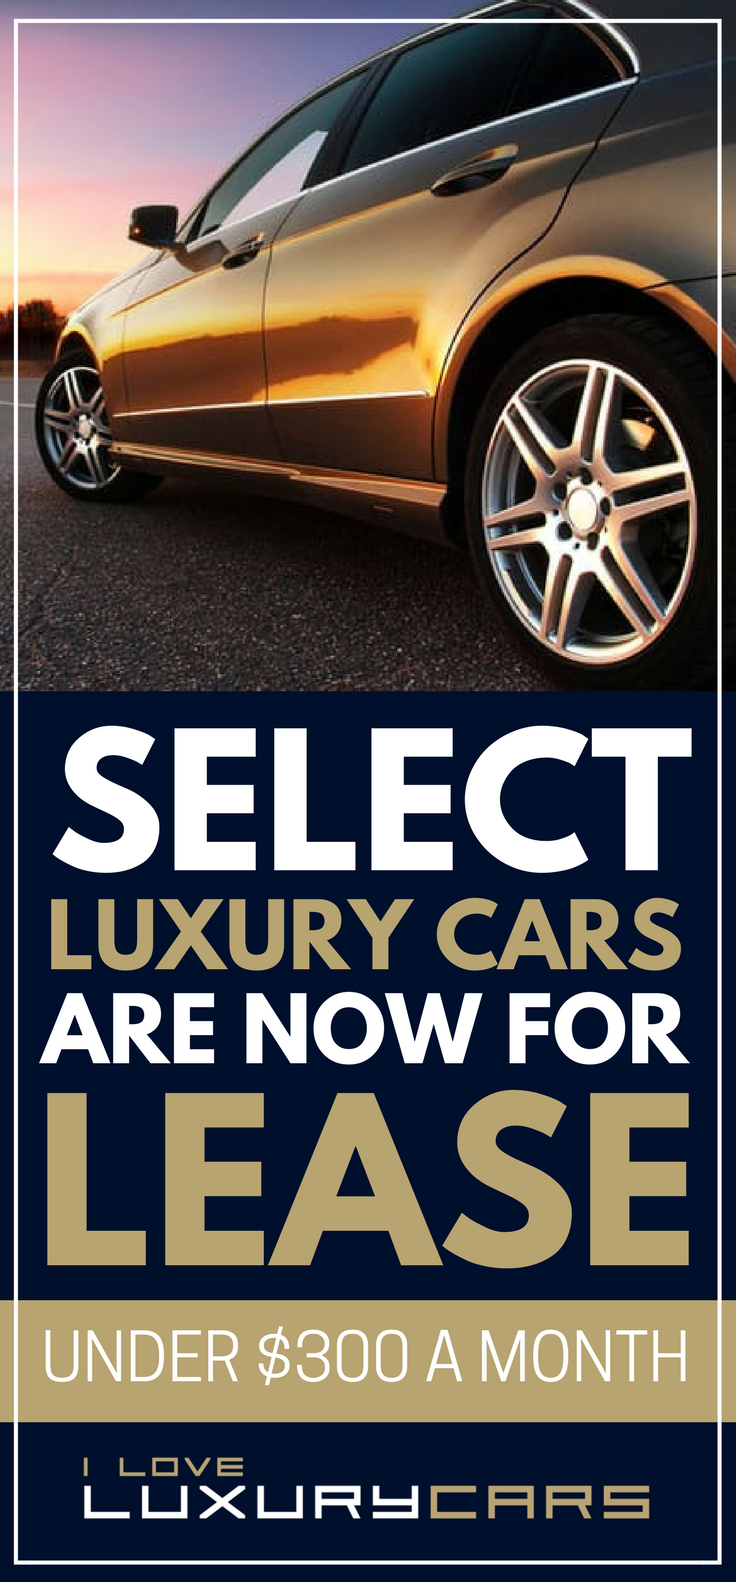 Select Luxury Cars Are Now For Lease Under 300 A Month With Images Luxury Cars Lease Luxury